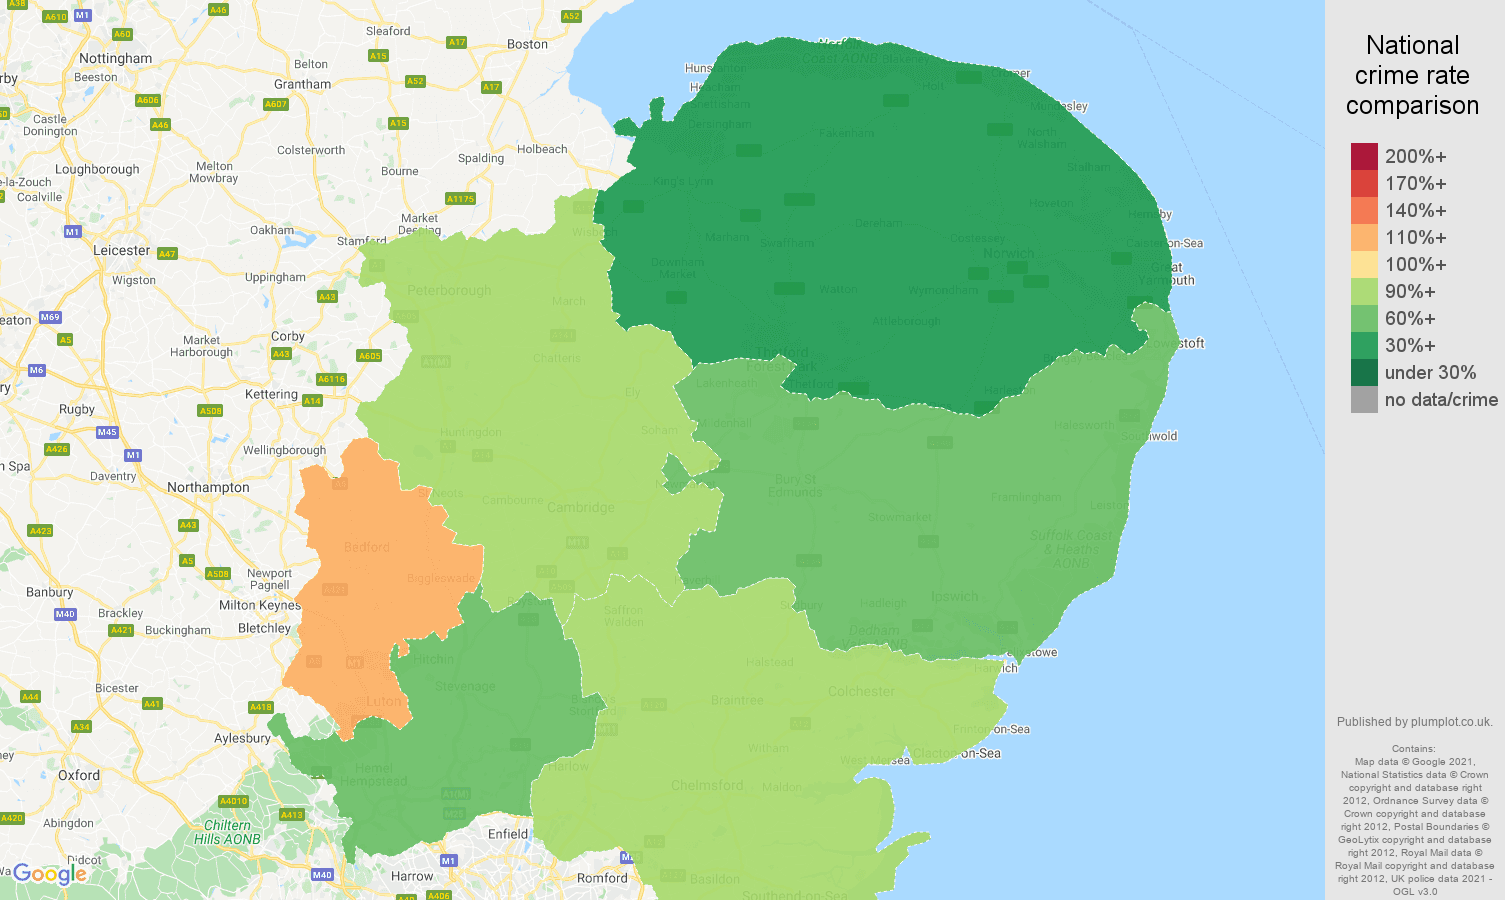 East of England burglary crime rate comparison map